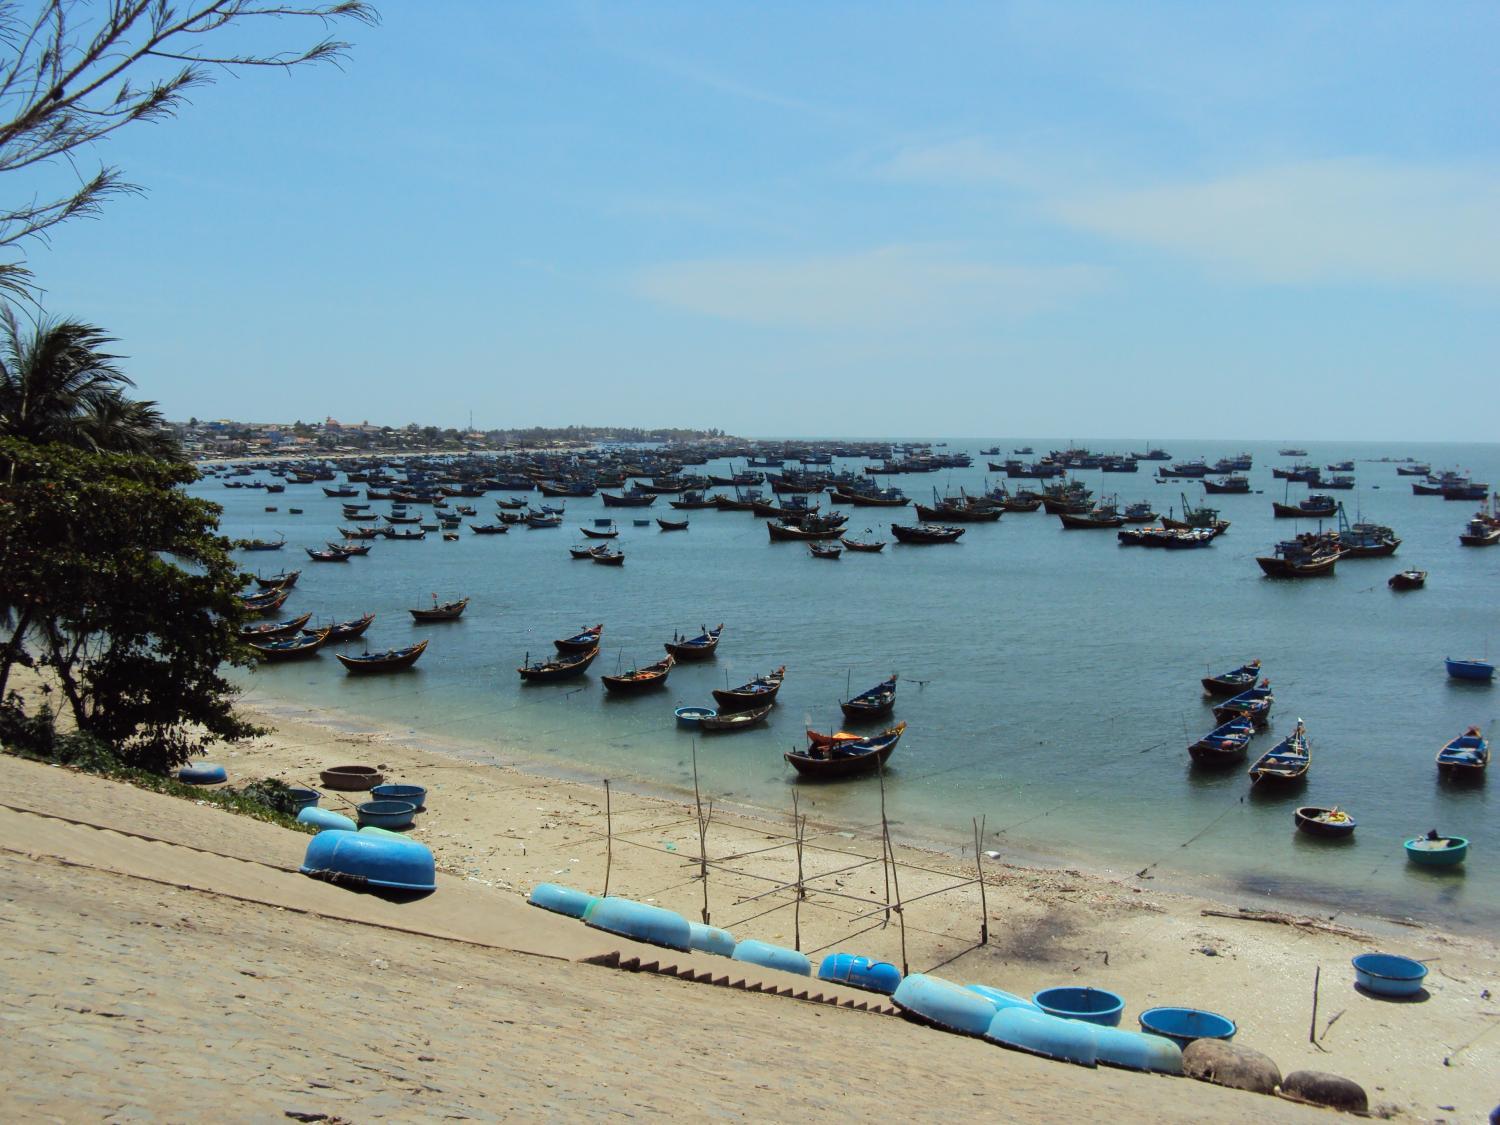 Fishing boats at the harbour